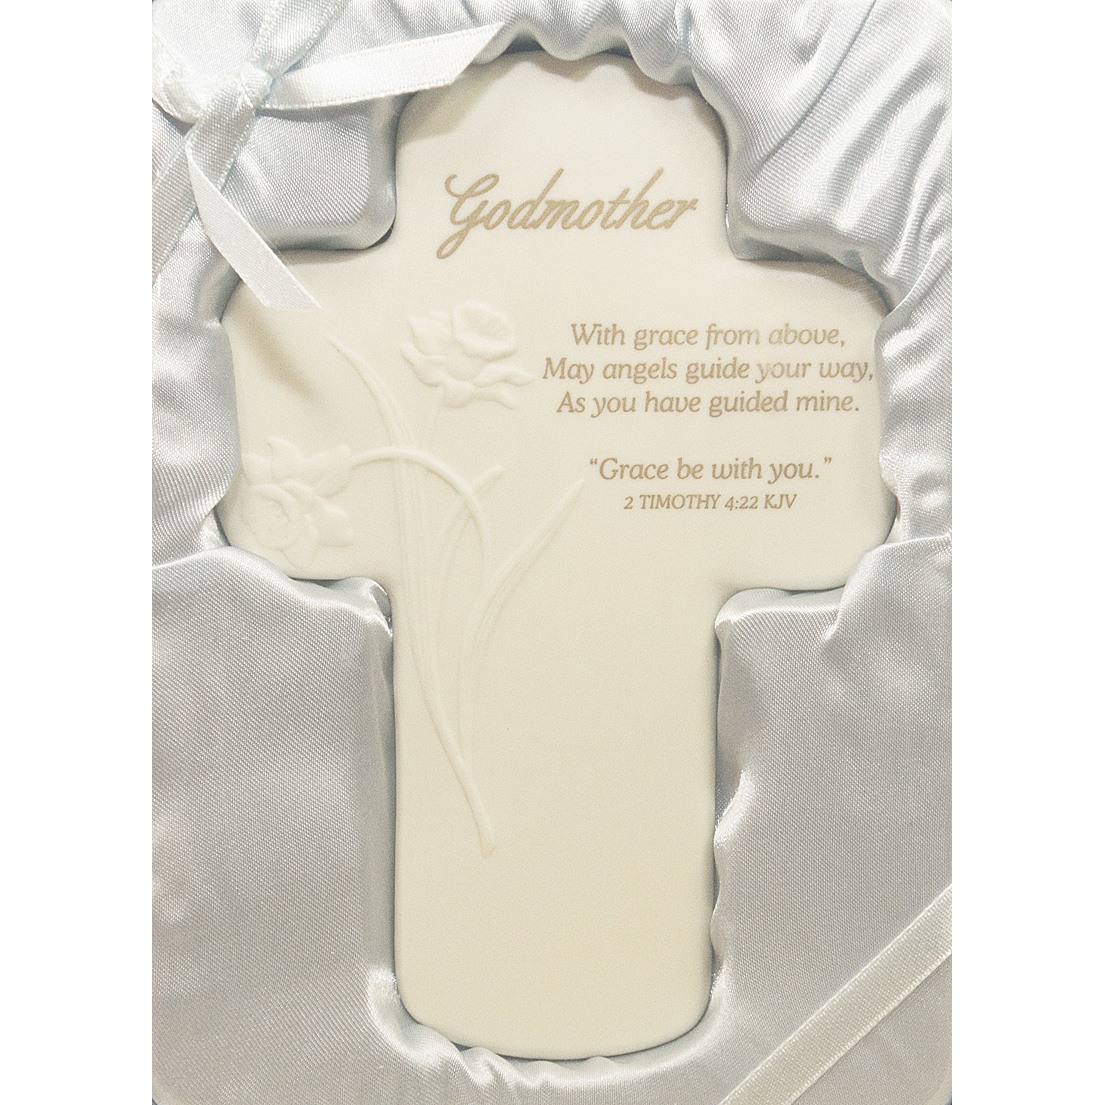 Godmother Porcelain Cross-script